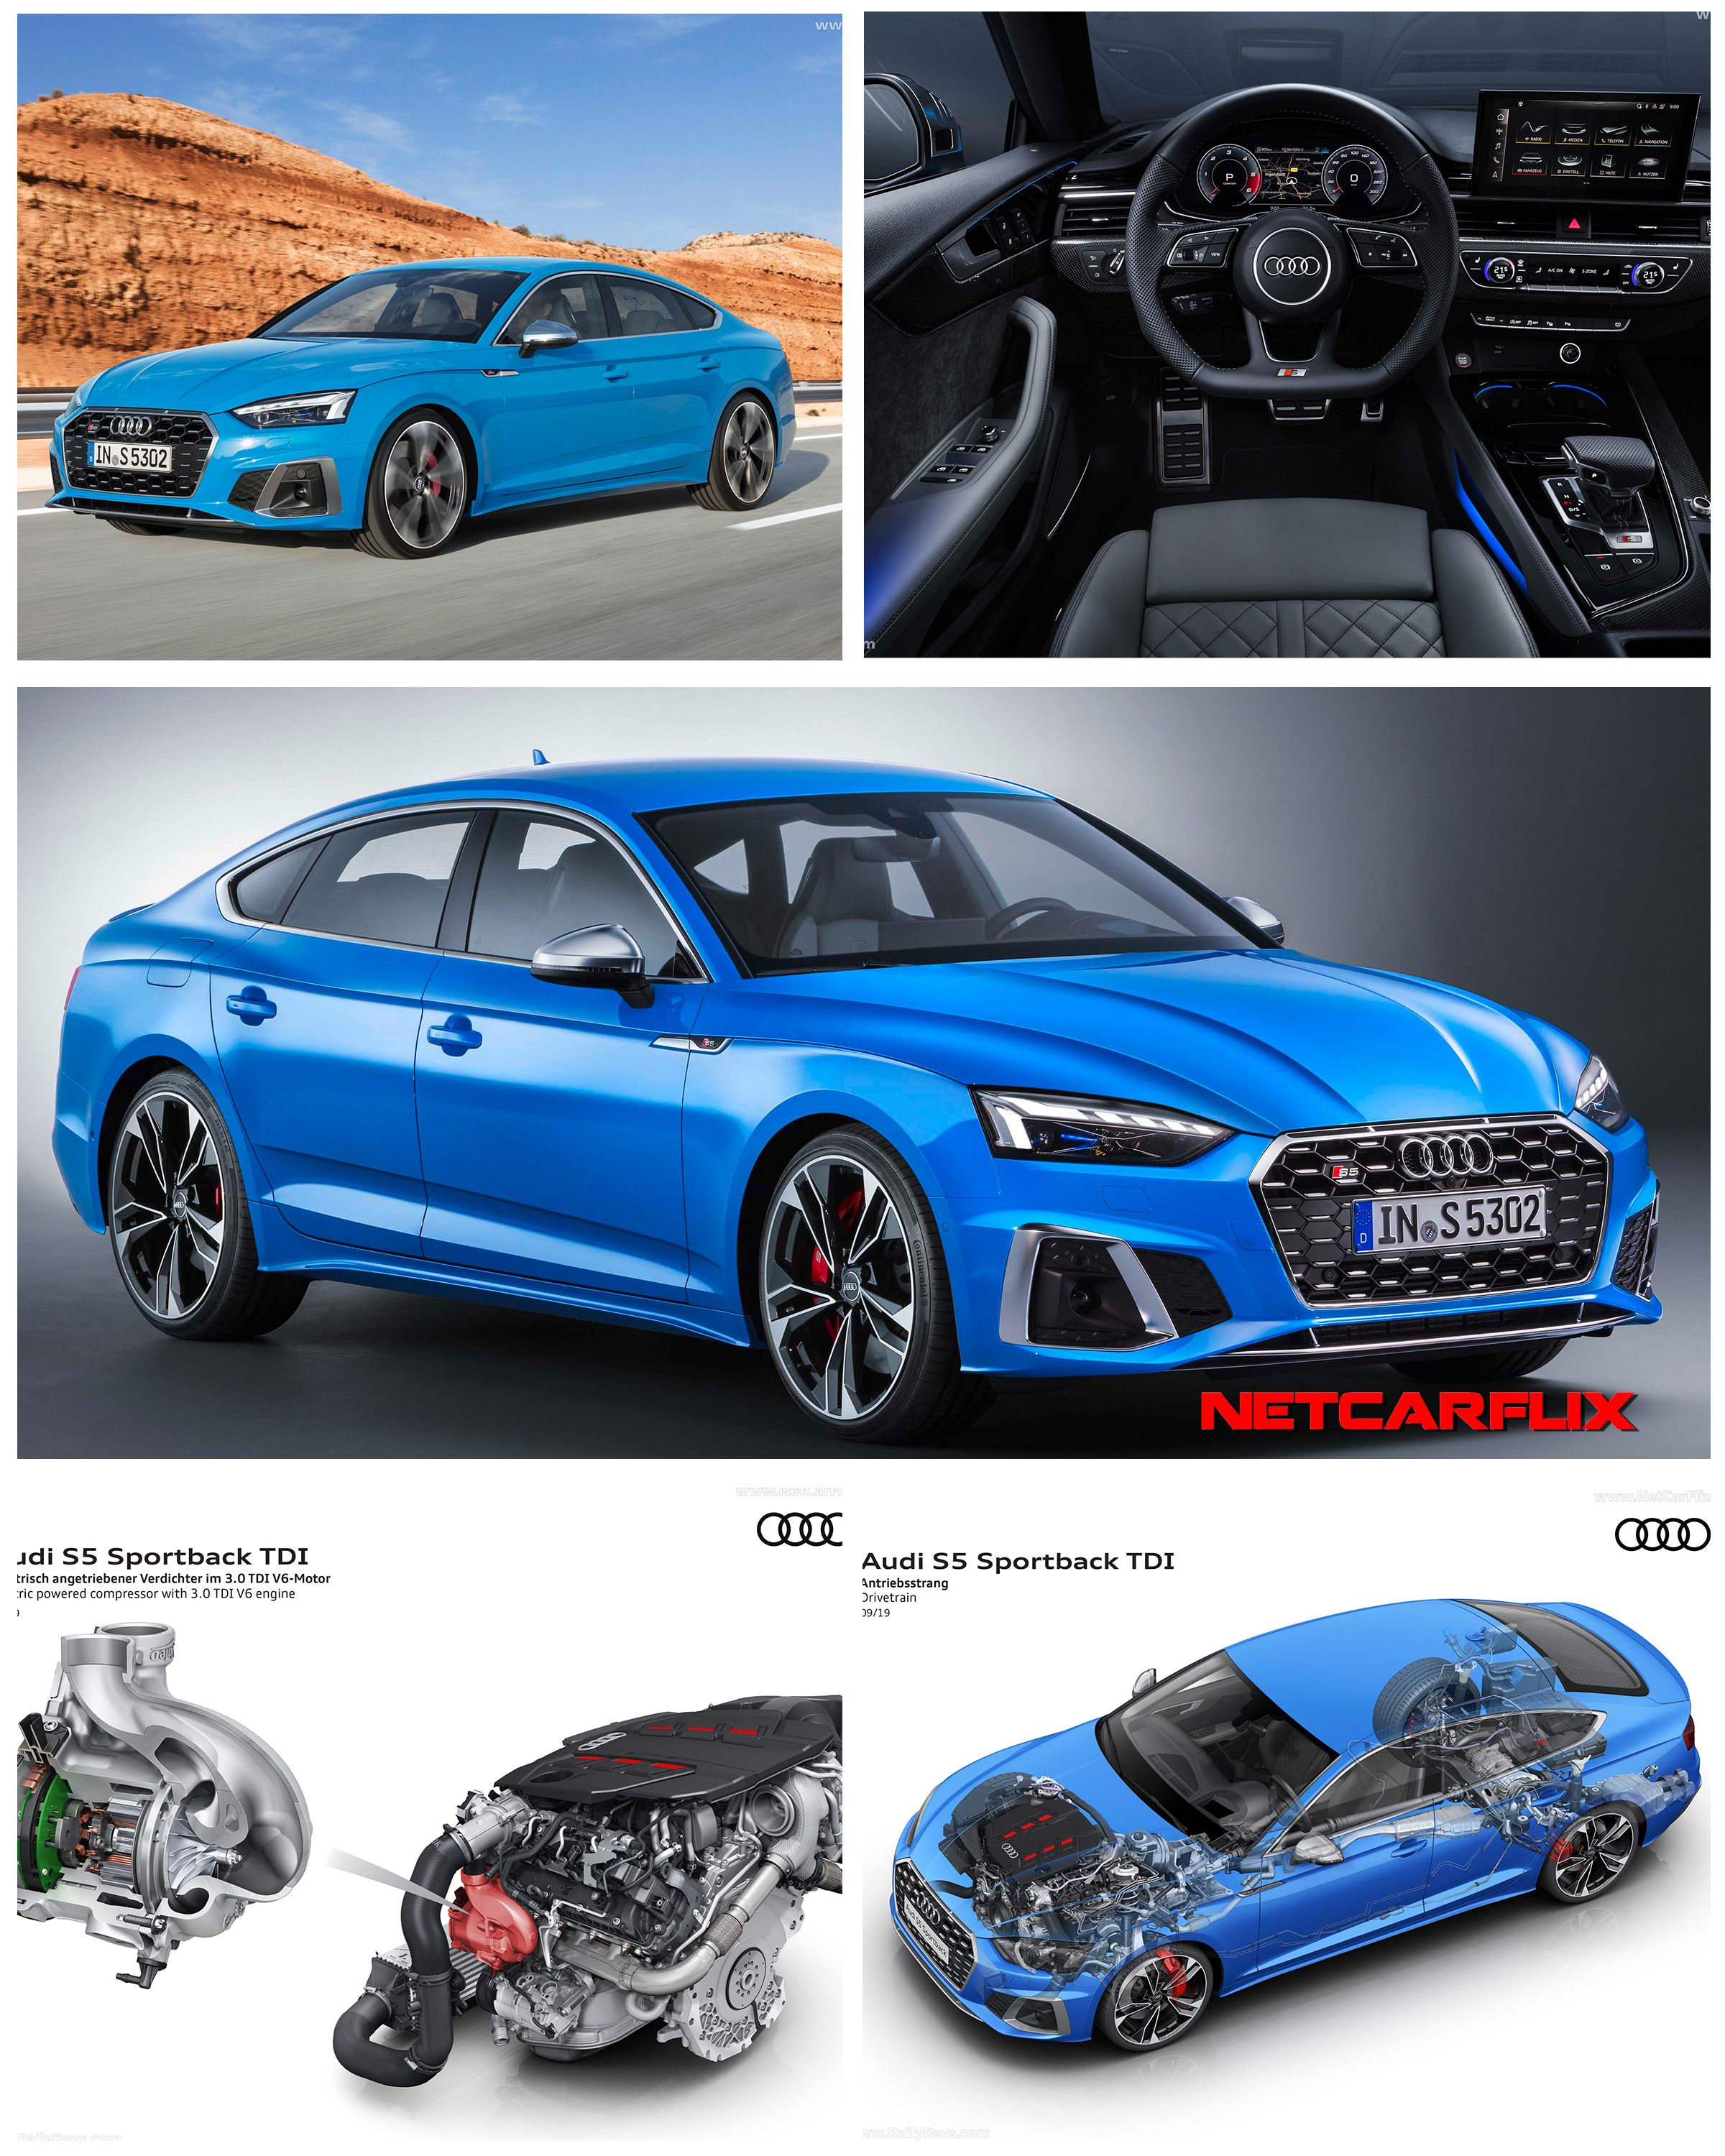 2020 Audi S5 Sportback Tdi Hq Pictures Specs Information And Videos Dailyrevs Audi S5 Sportback Audi S5 Audi